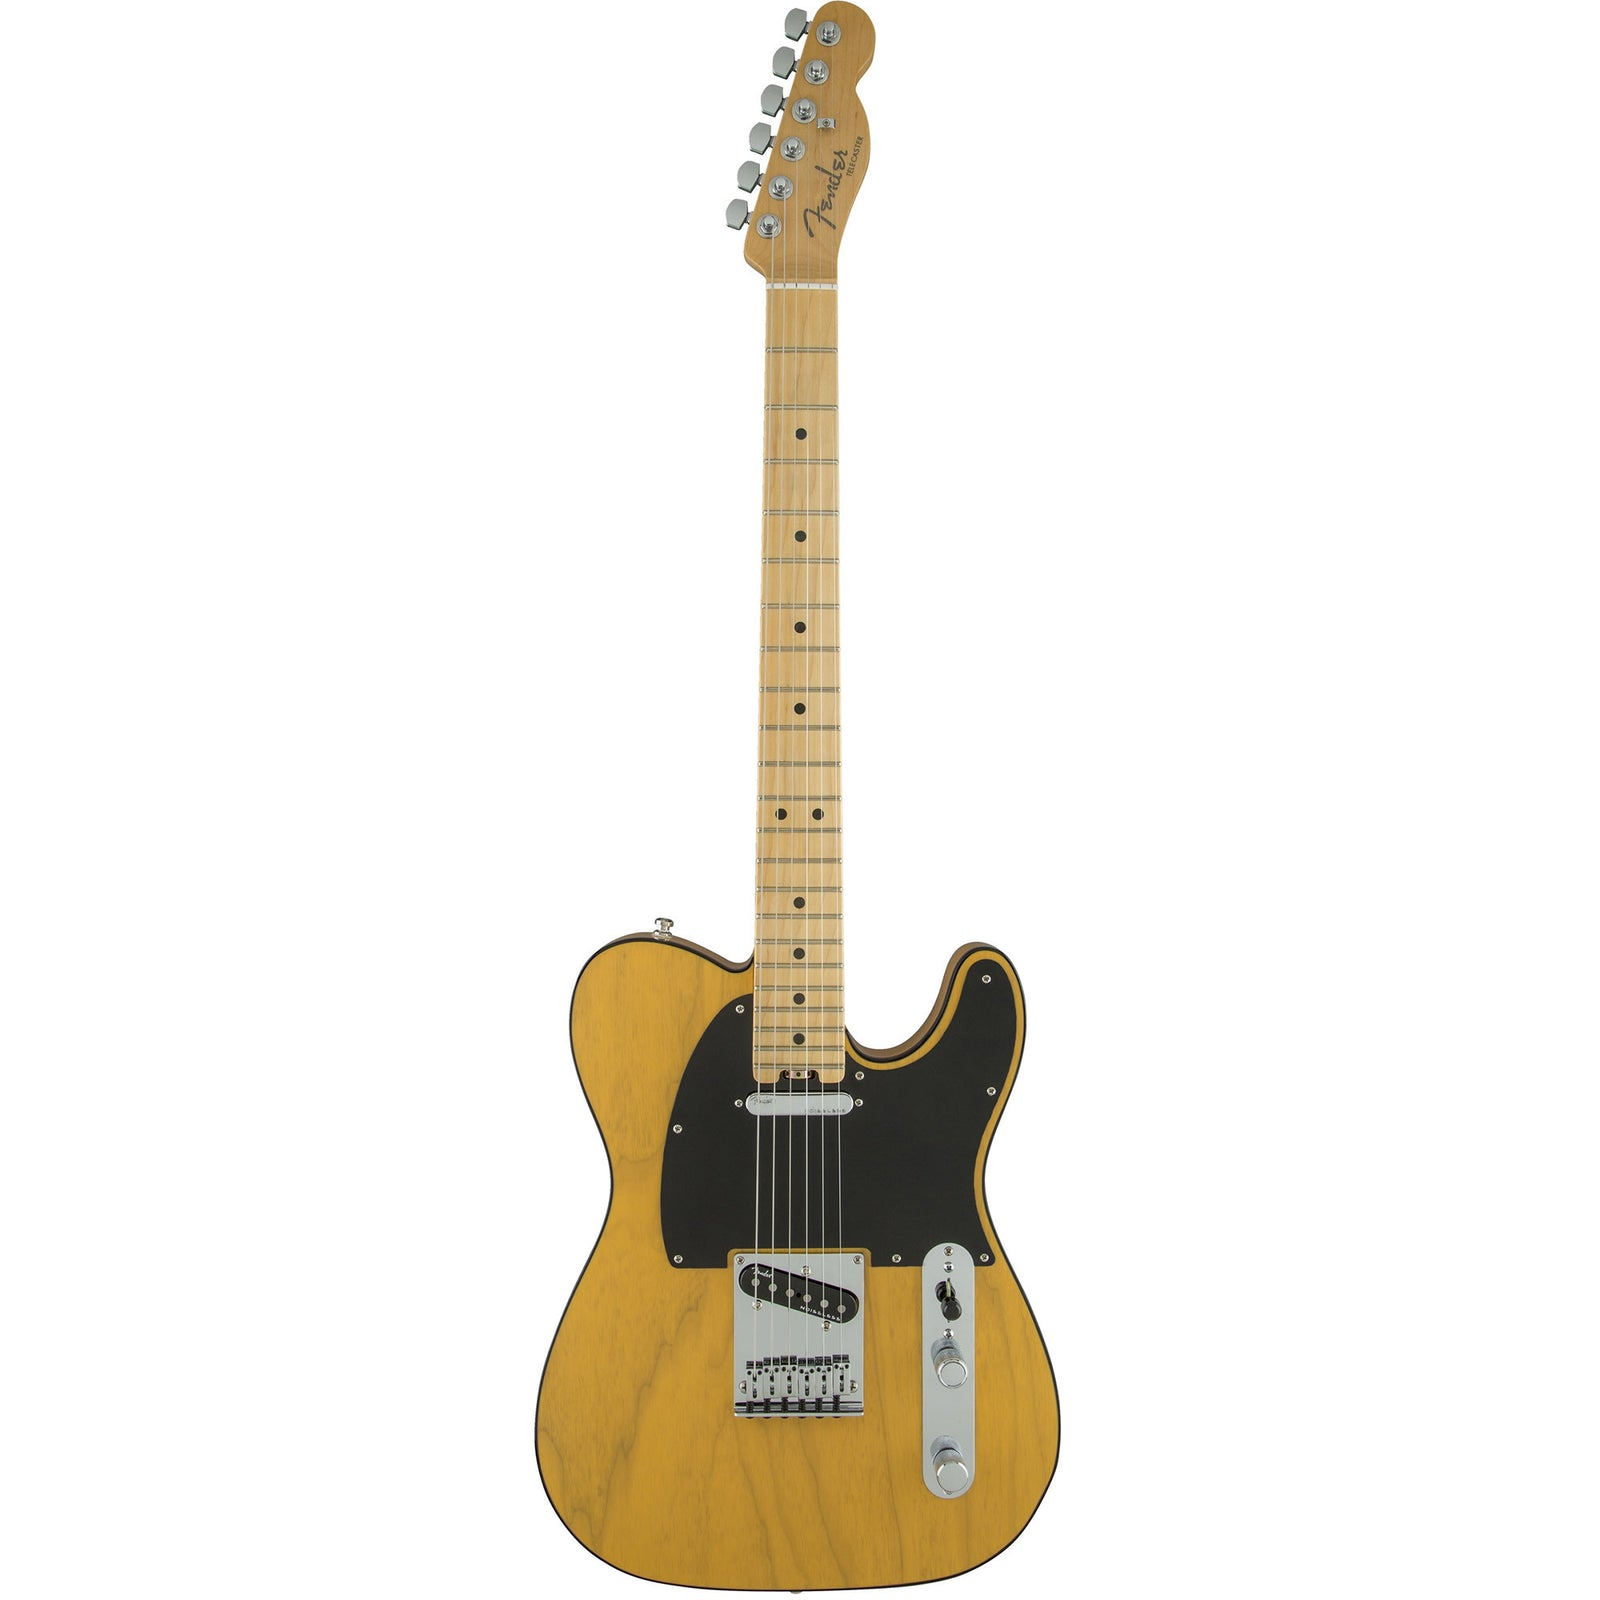 Fender American Elite Telecaster, Maple Fingerboard, Butterscotch Blonde Ash